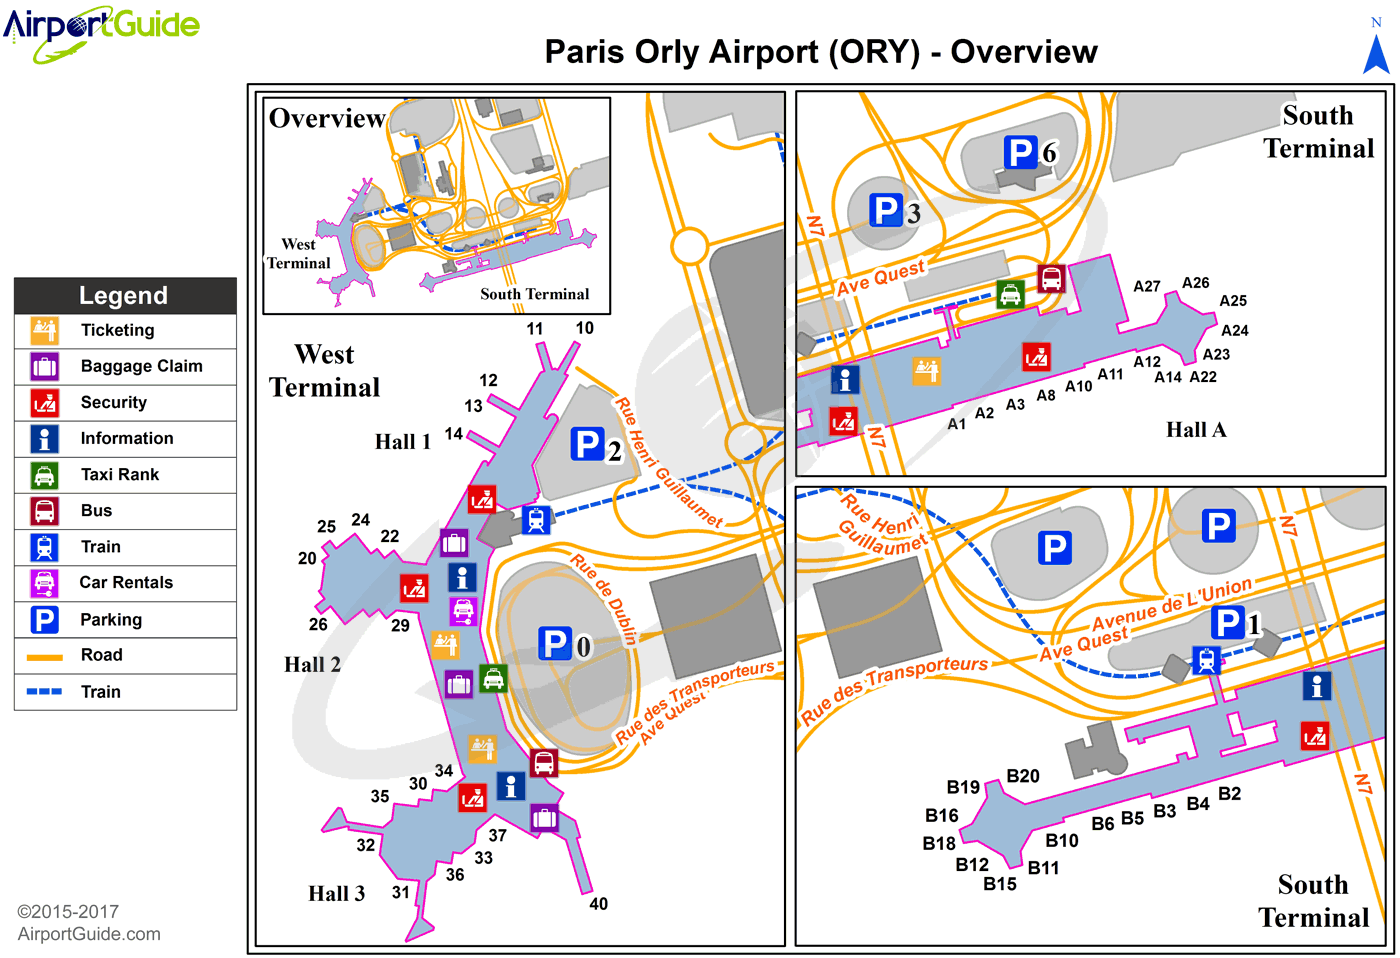 Paris ParisOrly (ORY) Airport Terminal Map Overview